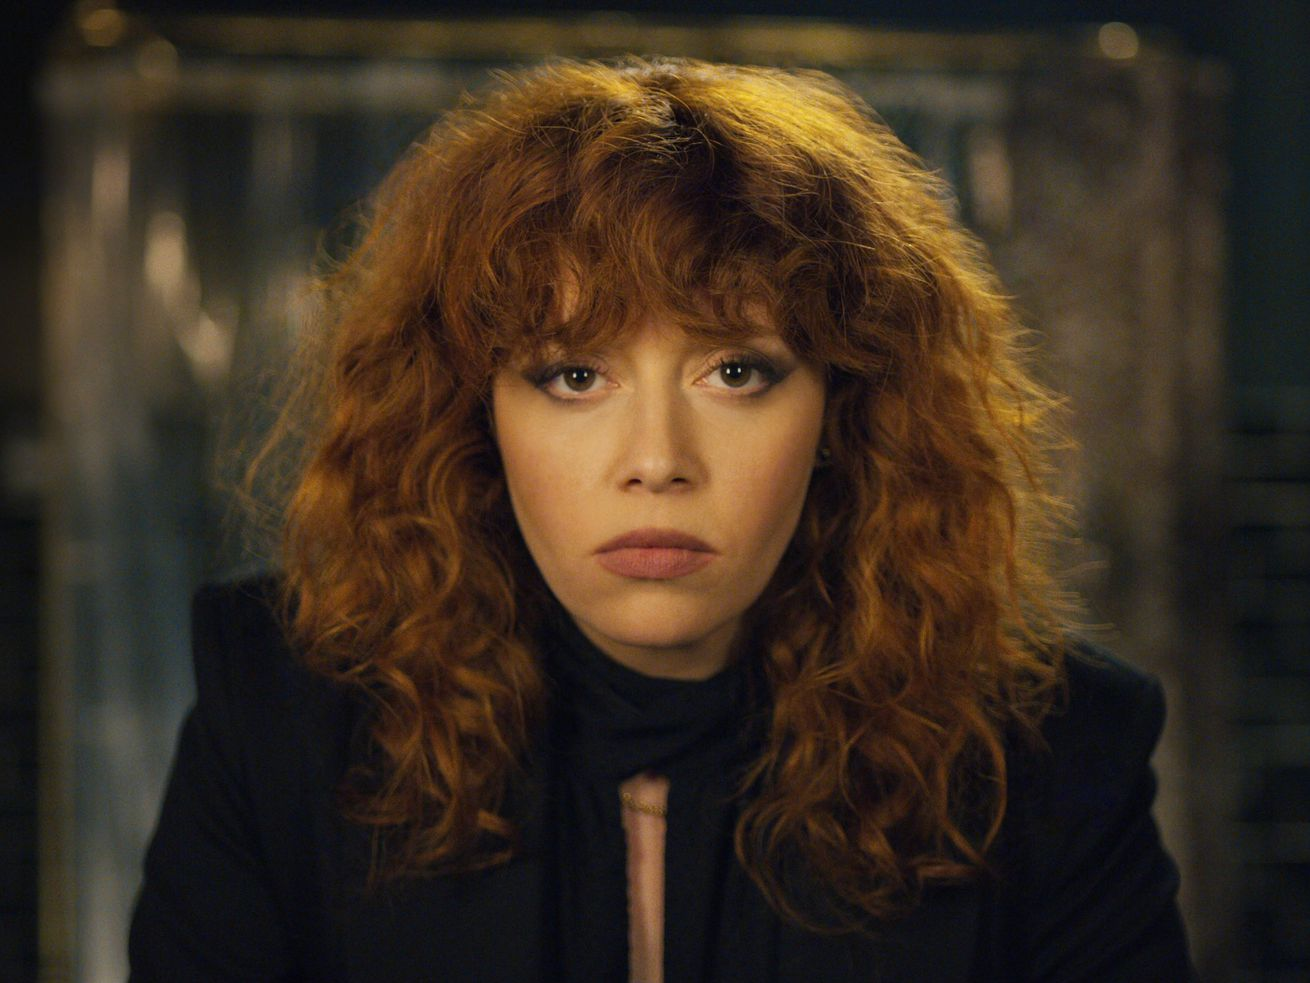 Nadia has to deal with a very long night in the terrific Russian Doll.